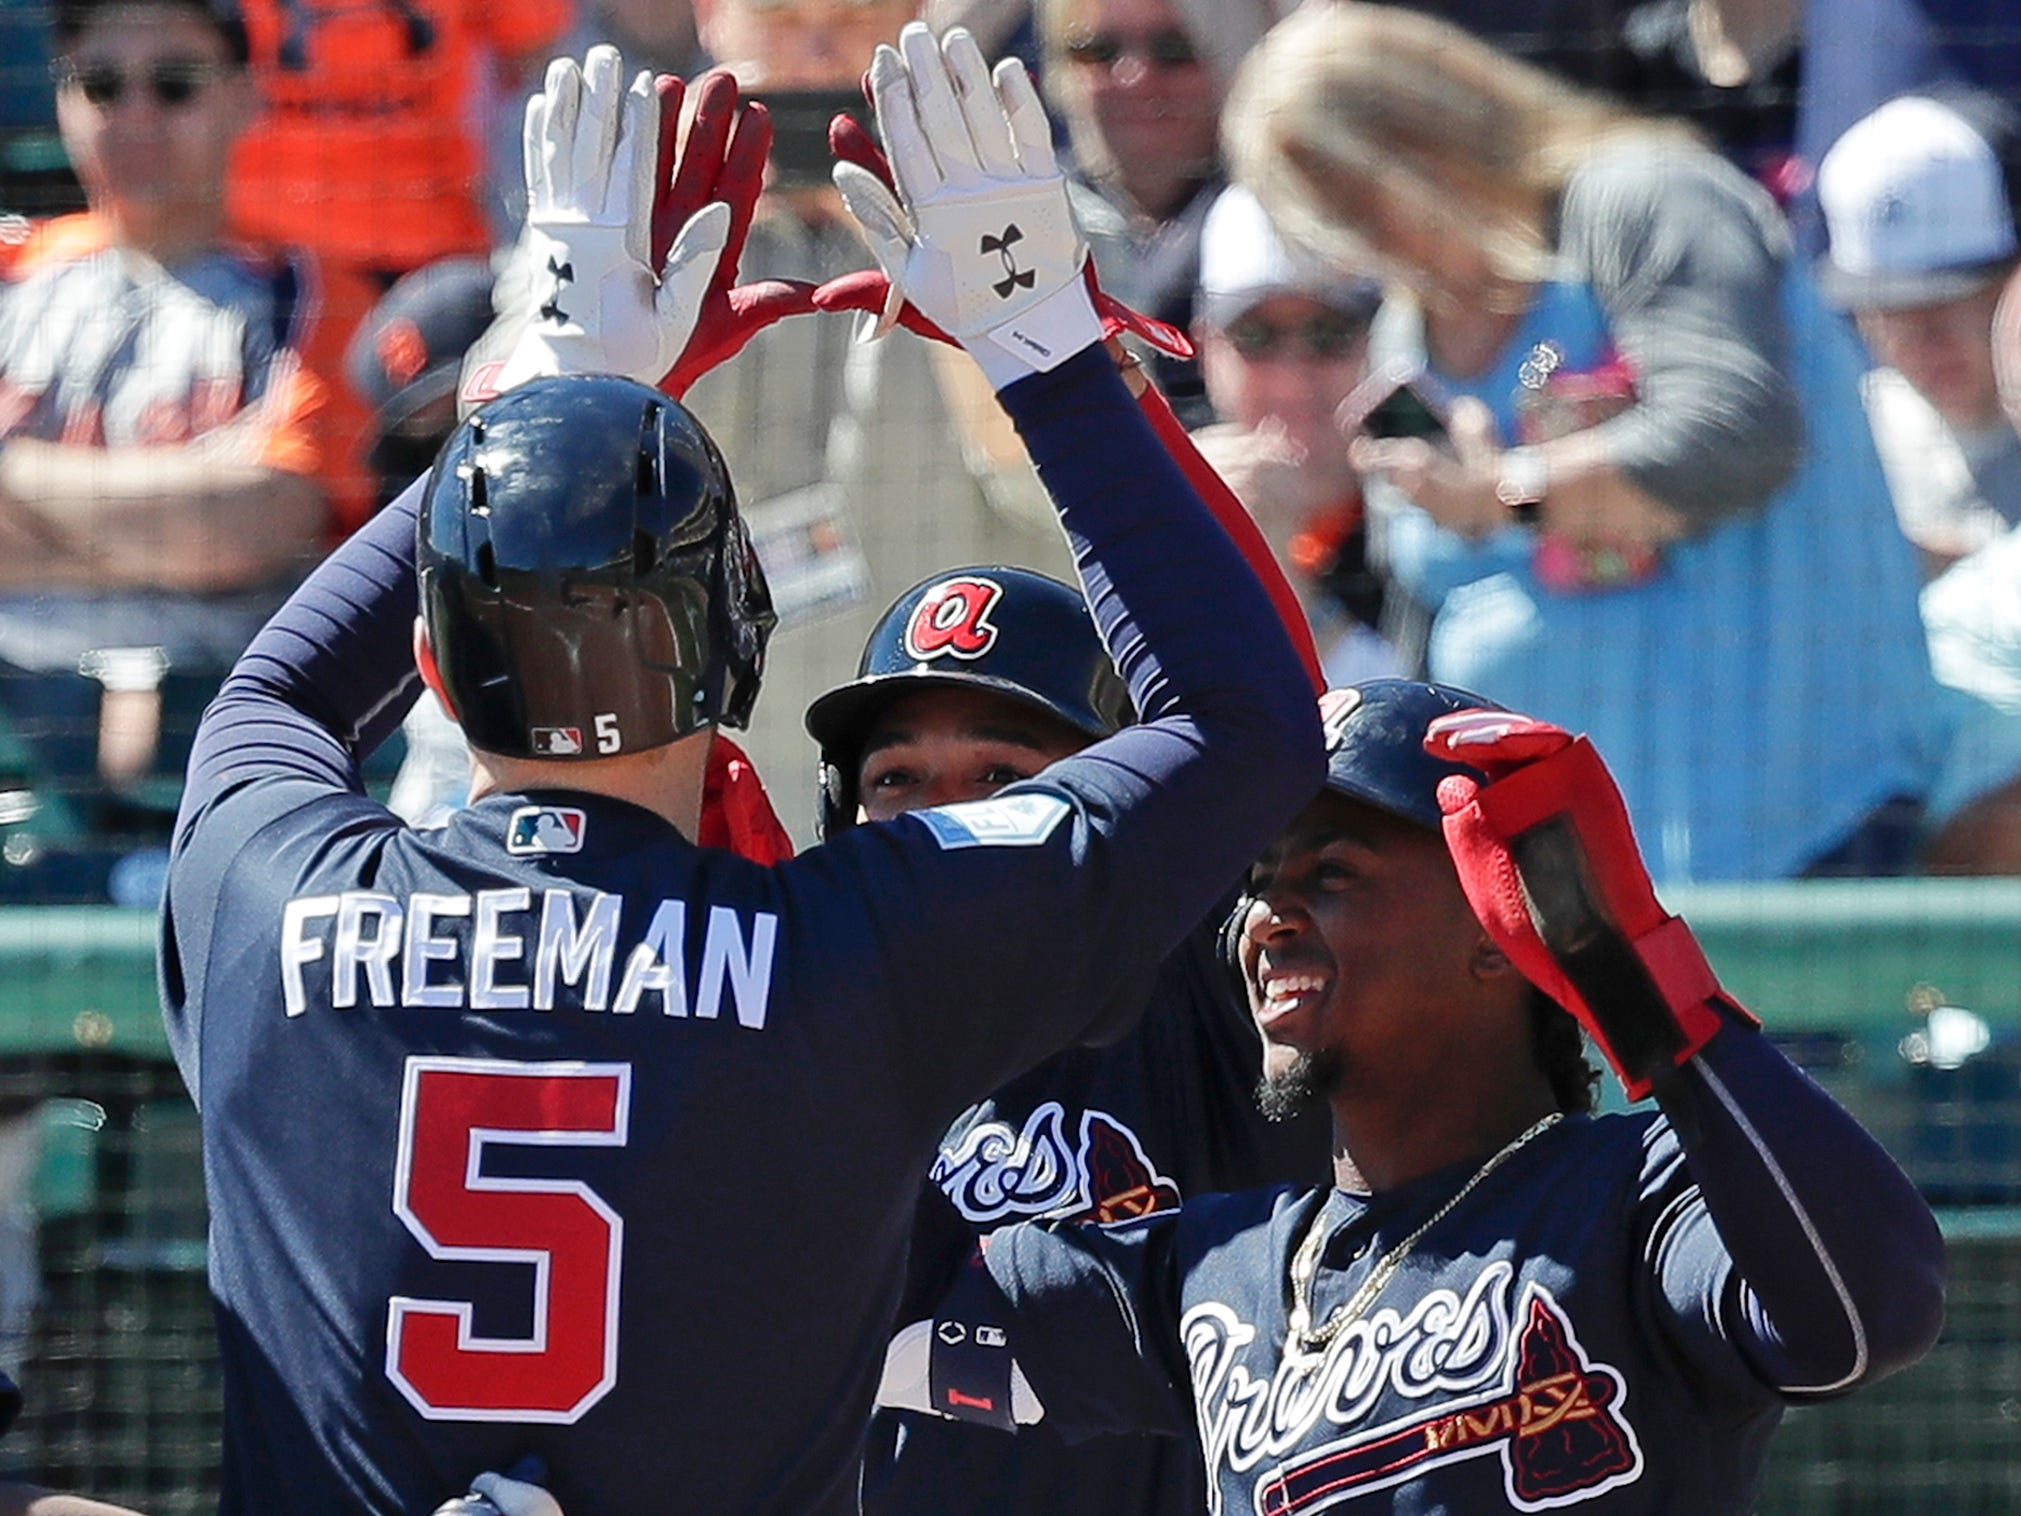 Atlanta Braves' Freddie Freeman (5) celebrates his third inning grand slam home run against the Detroit Tigers with teammates outside the dugout during a spring baseball exhibition game, Wednesday, March 6, 2019, in Kissimmee, Fla.